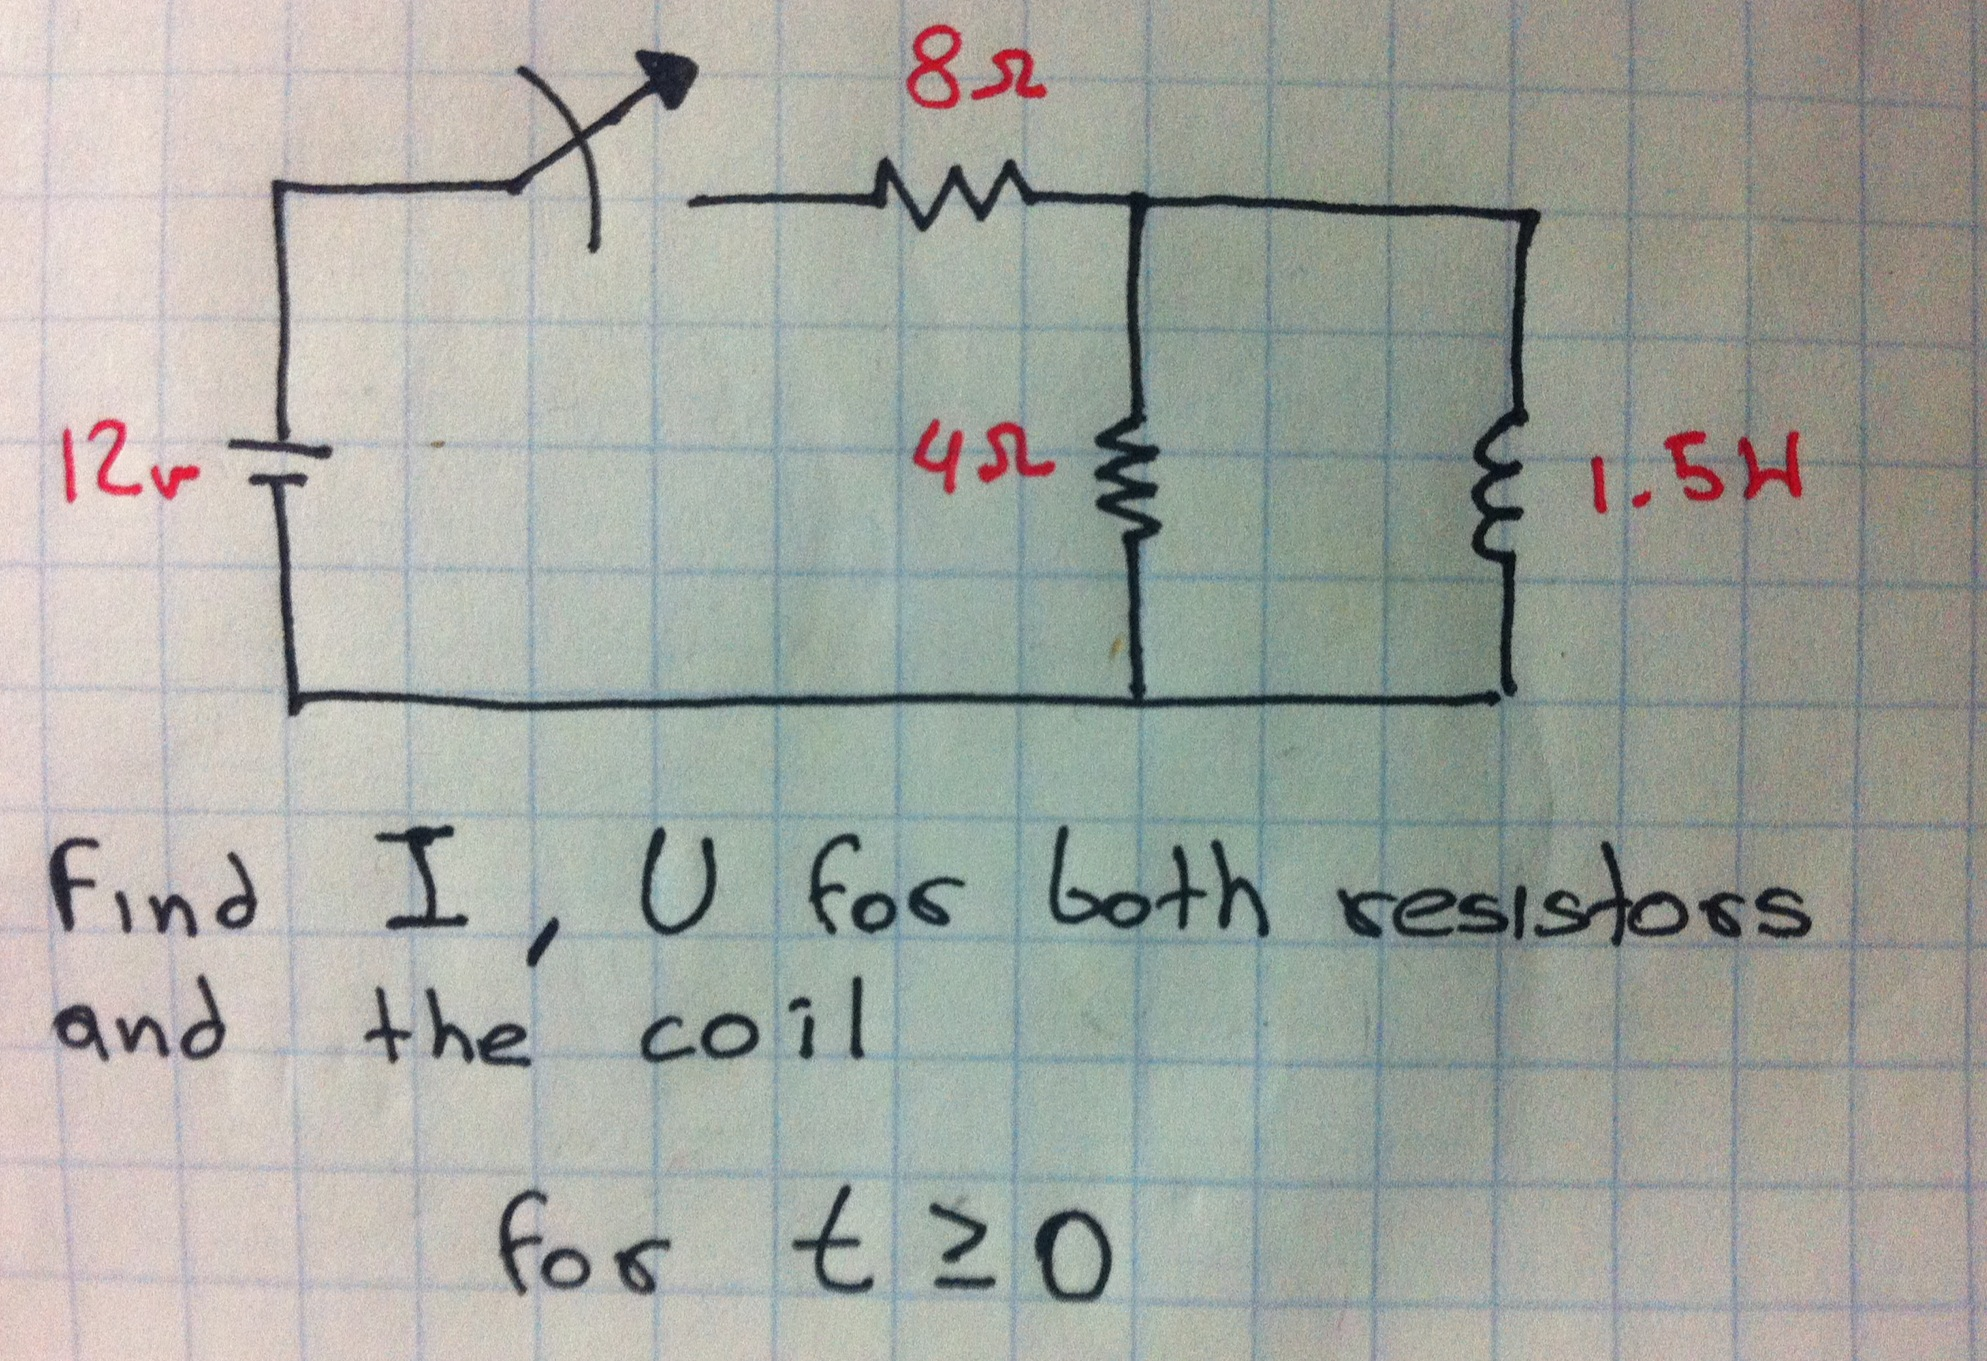 Find I, U for both resistors and the coil for t l